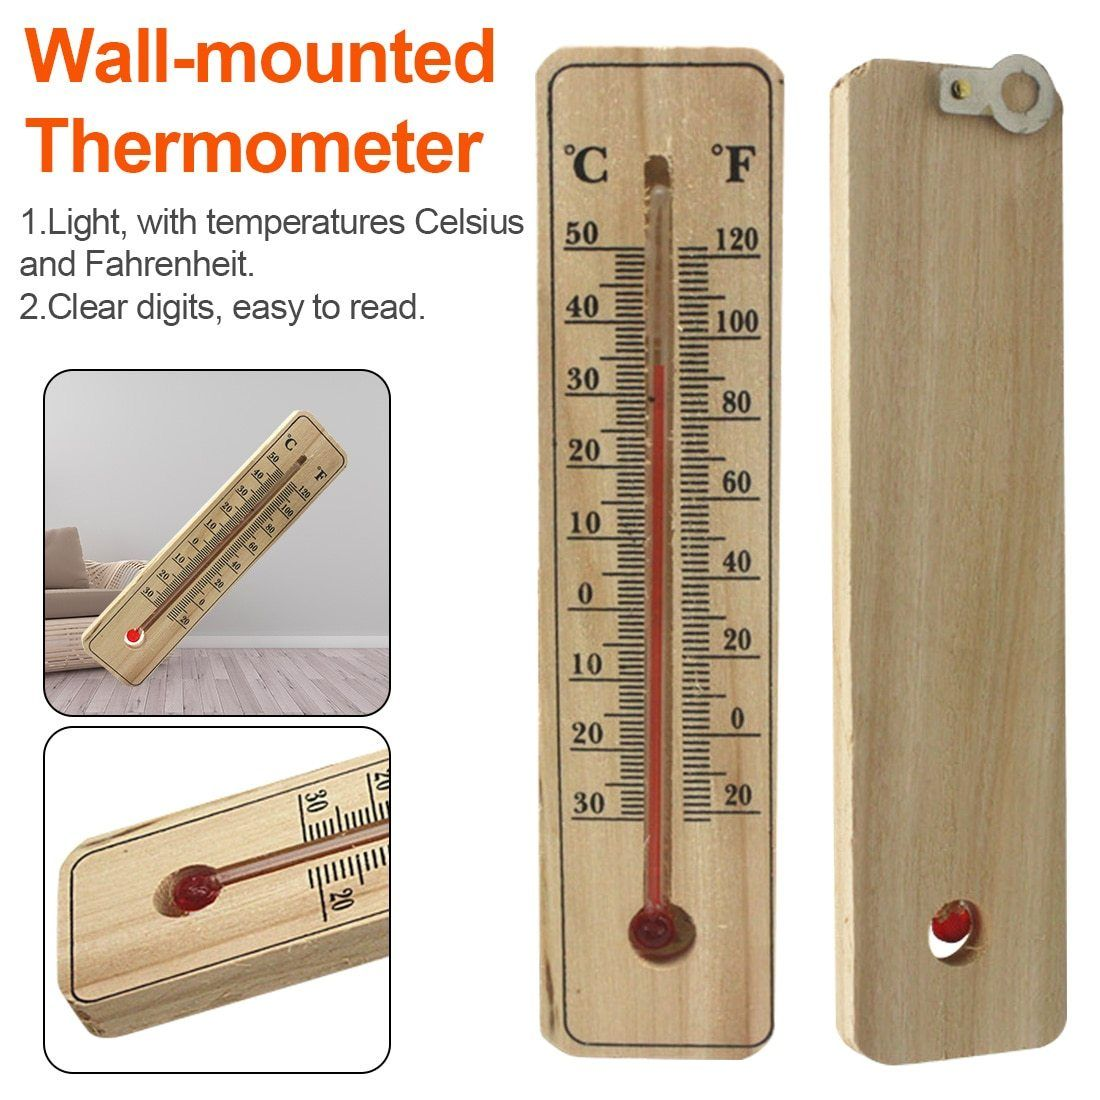 THERMOMETER WALL MOUNTED HOME GARDEN GARAGE INDOOR OUTDOOR